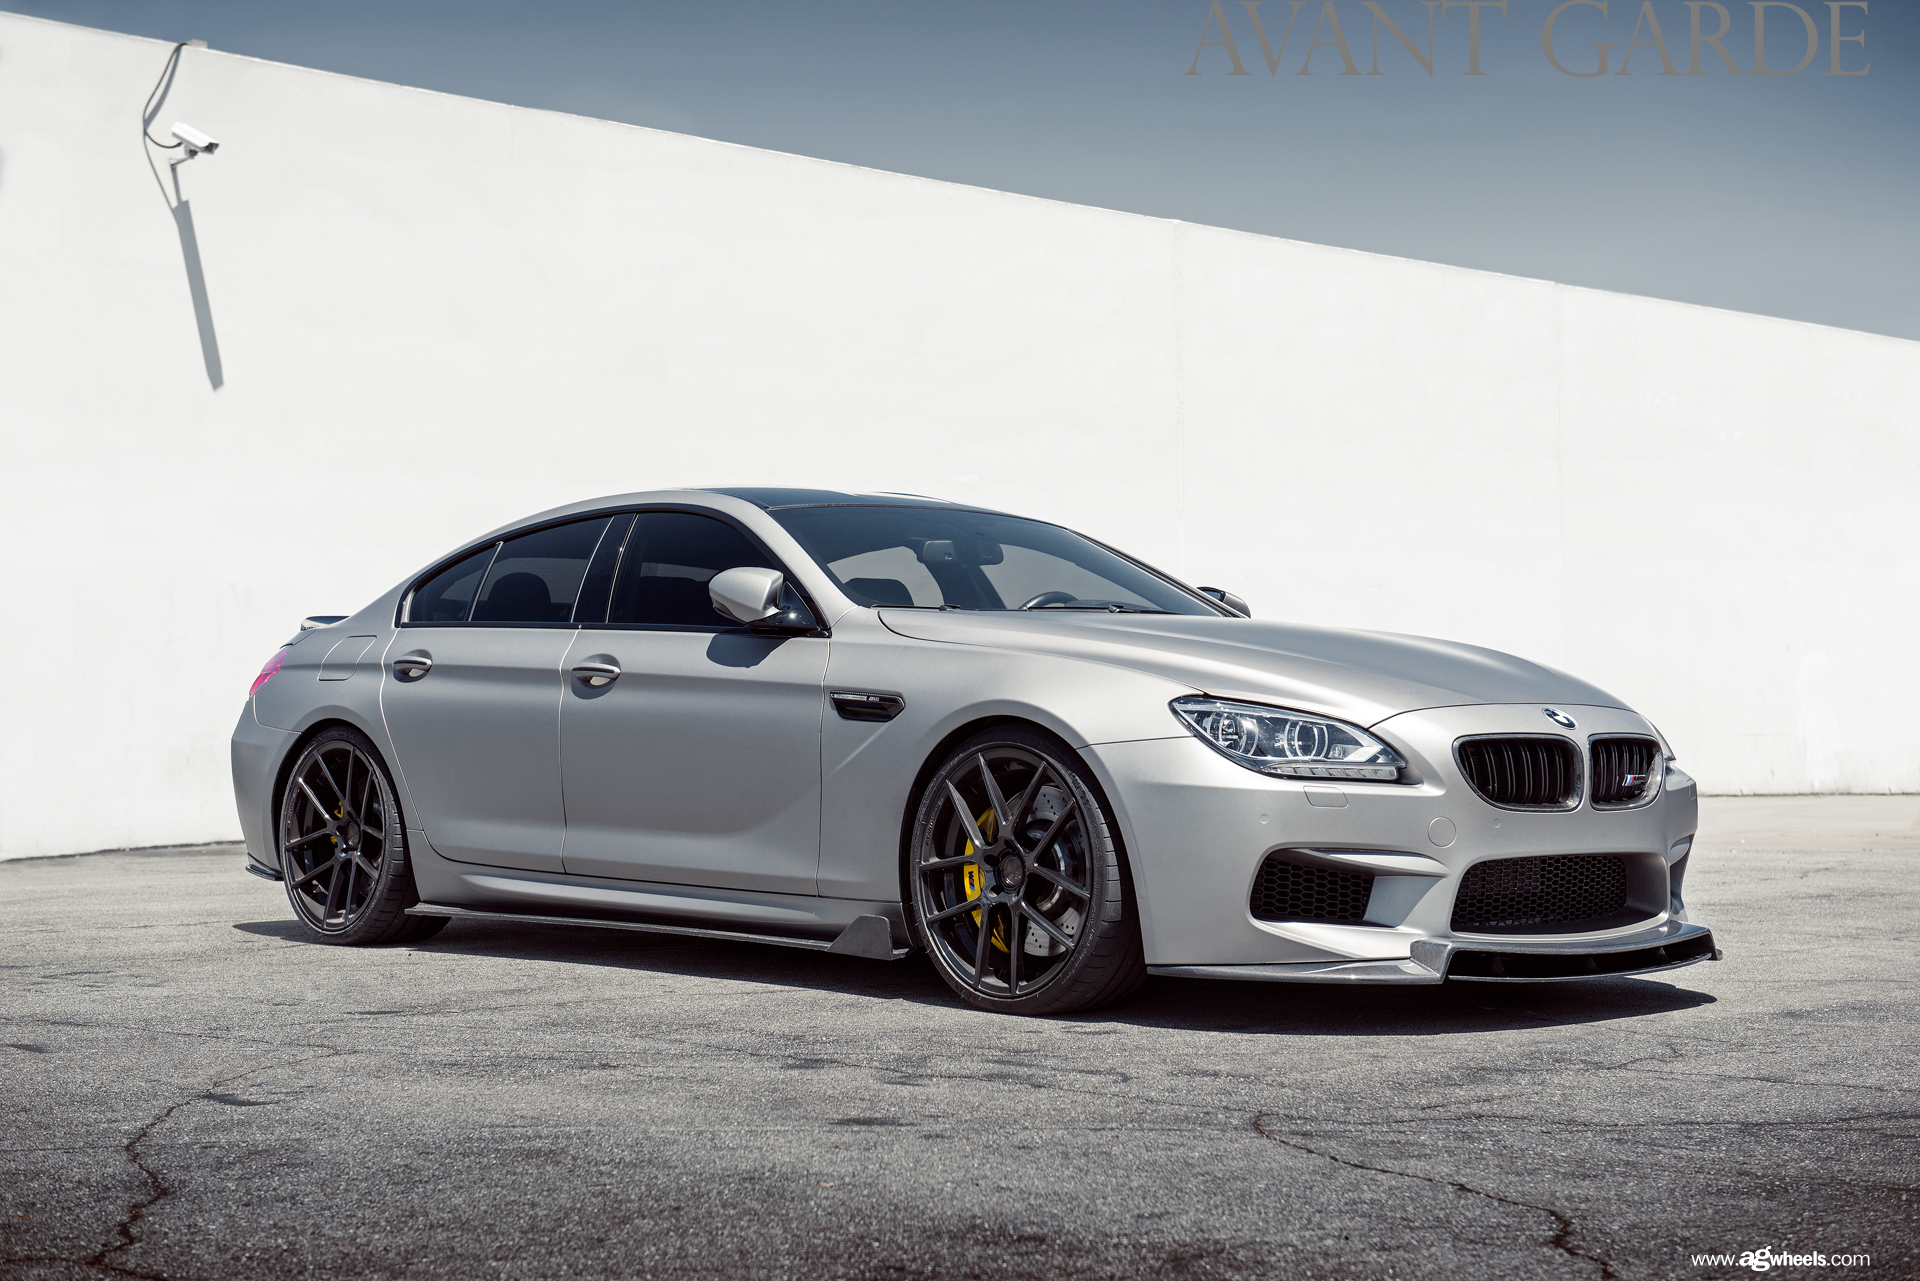 2015 Bmw M6 Gran Coupe #9